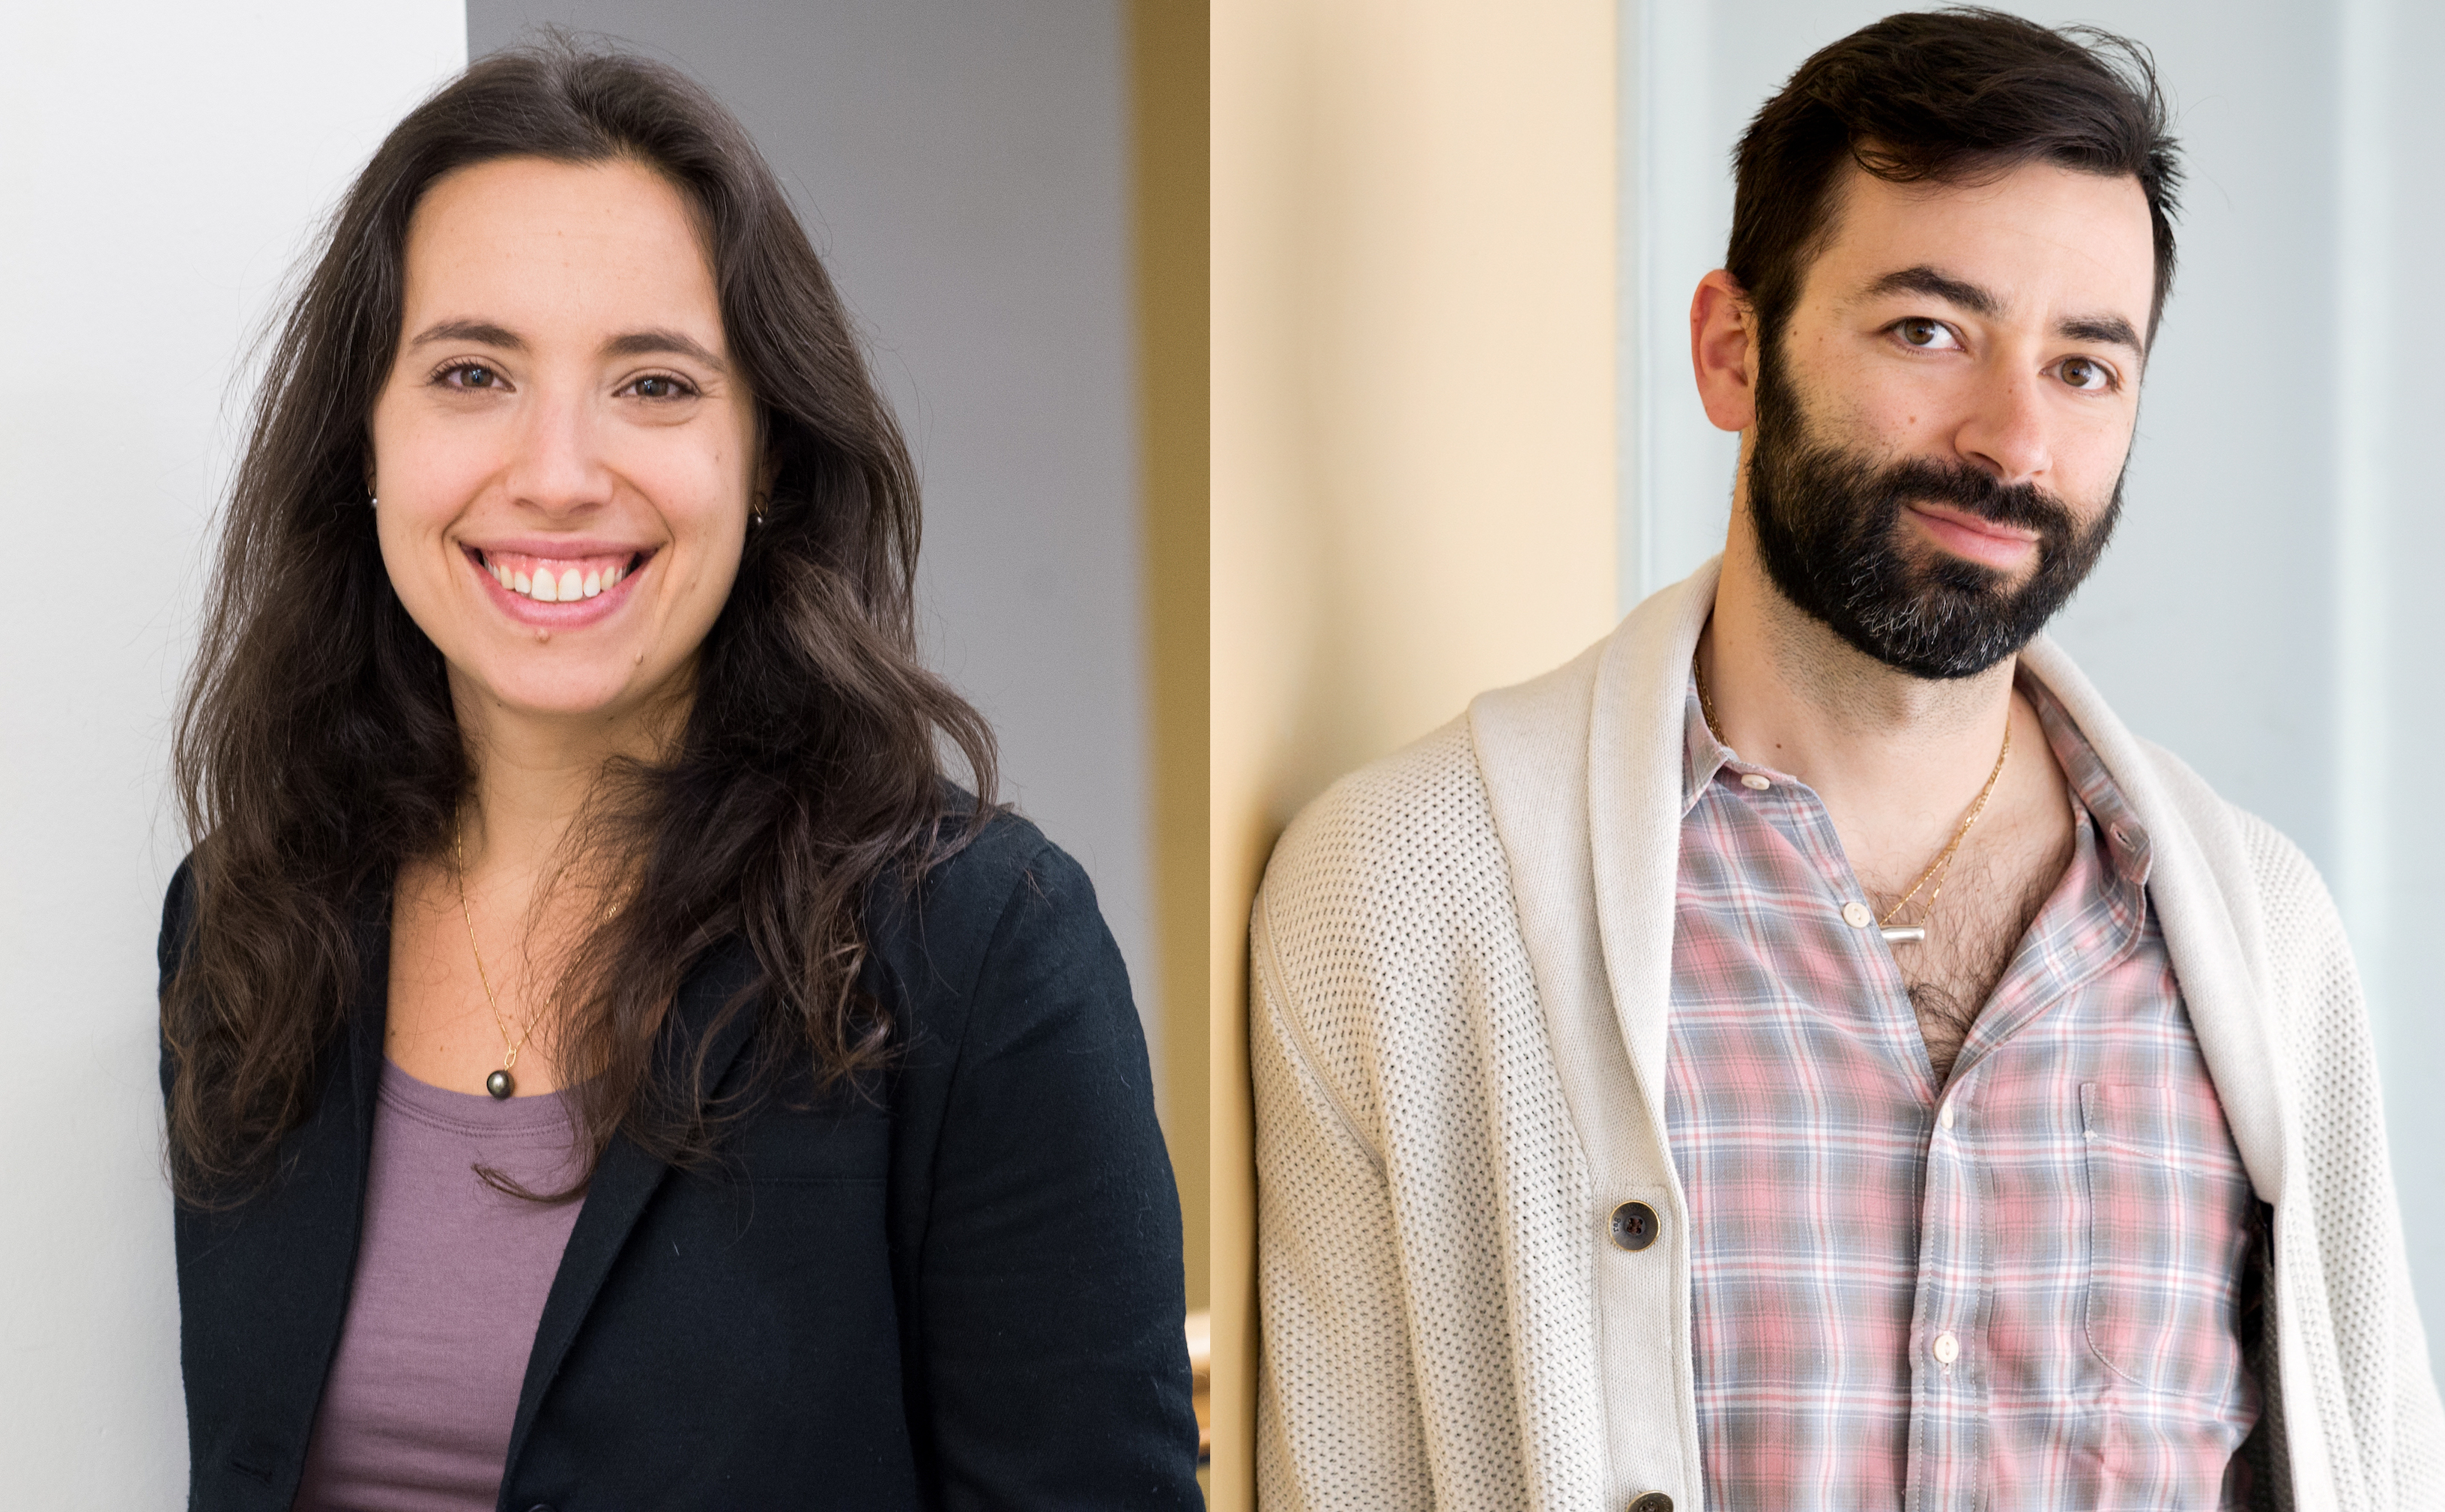 Professor Gabriela Schlau Cohen and Professor Alex Shalek smile in a hallway.